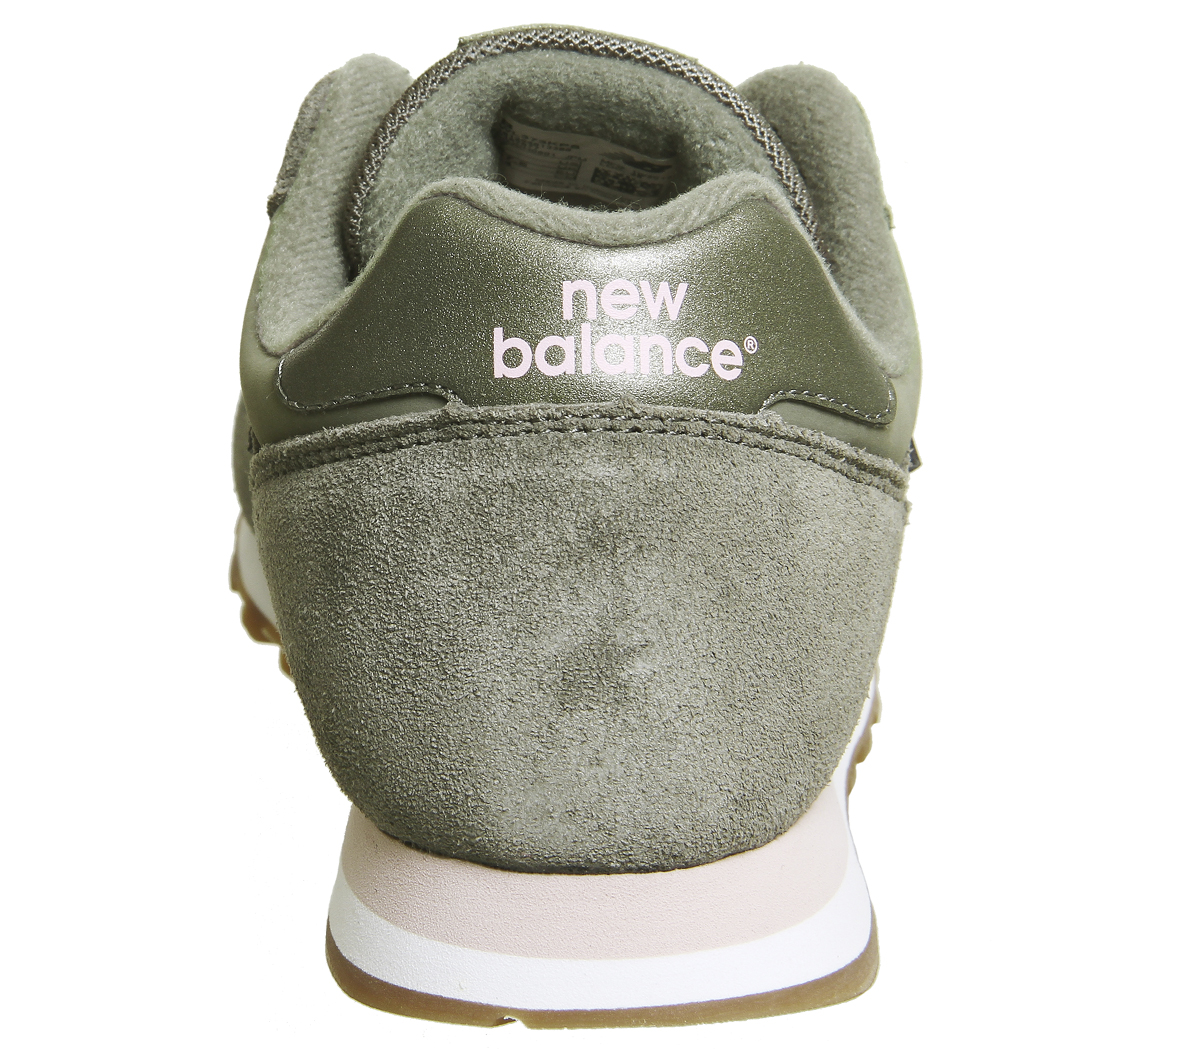 brand new a01c0 81960 Womens-New-Balance-373-Trainers-Light-Khaki-Trainers-